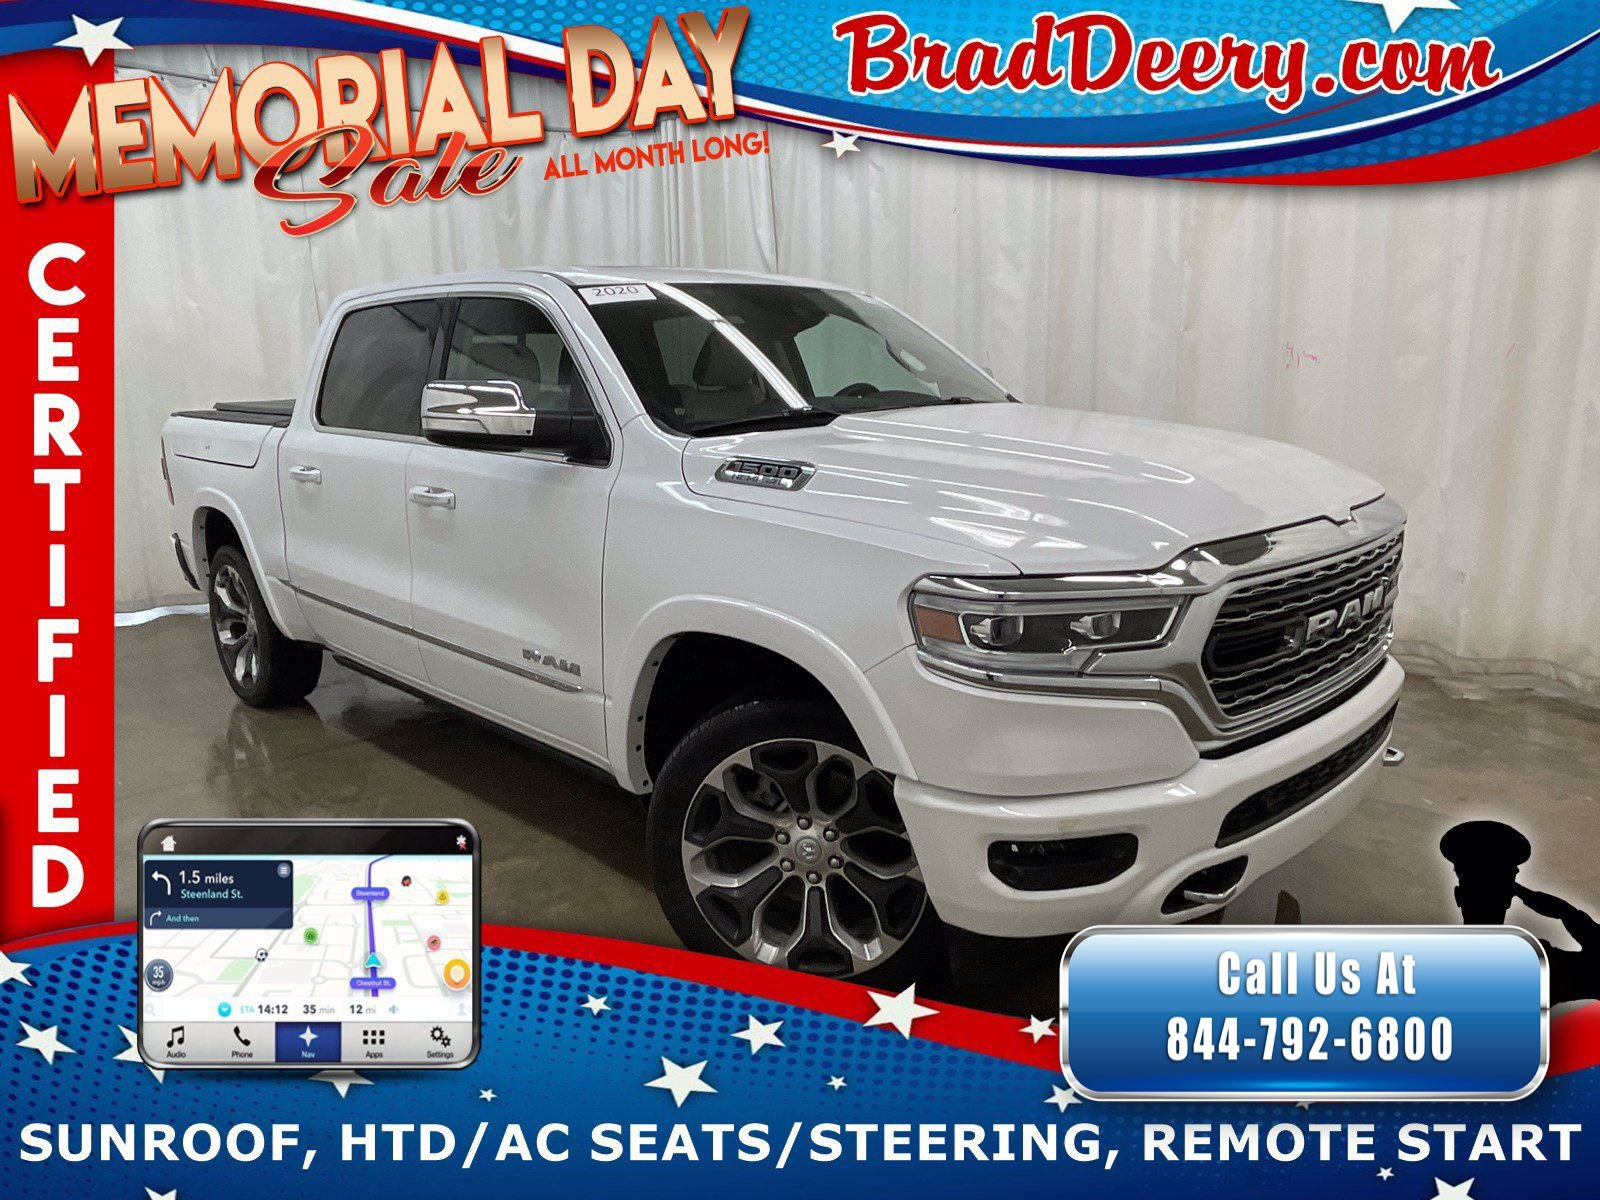 2020 Ram 1500 Limited Crew Cab 4x4   **RAM CERTIFIED** w/ Rambox Cargo System, Navi, Heated & Cooled Leather Seats